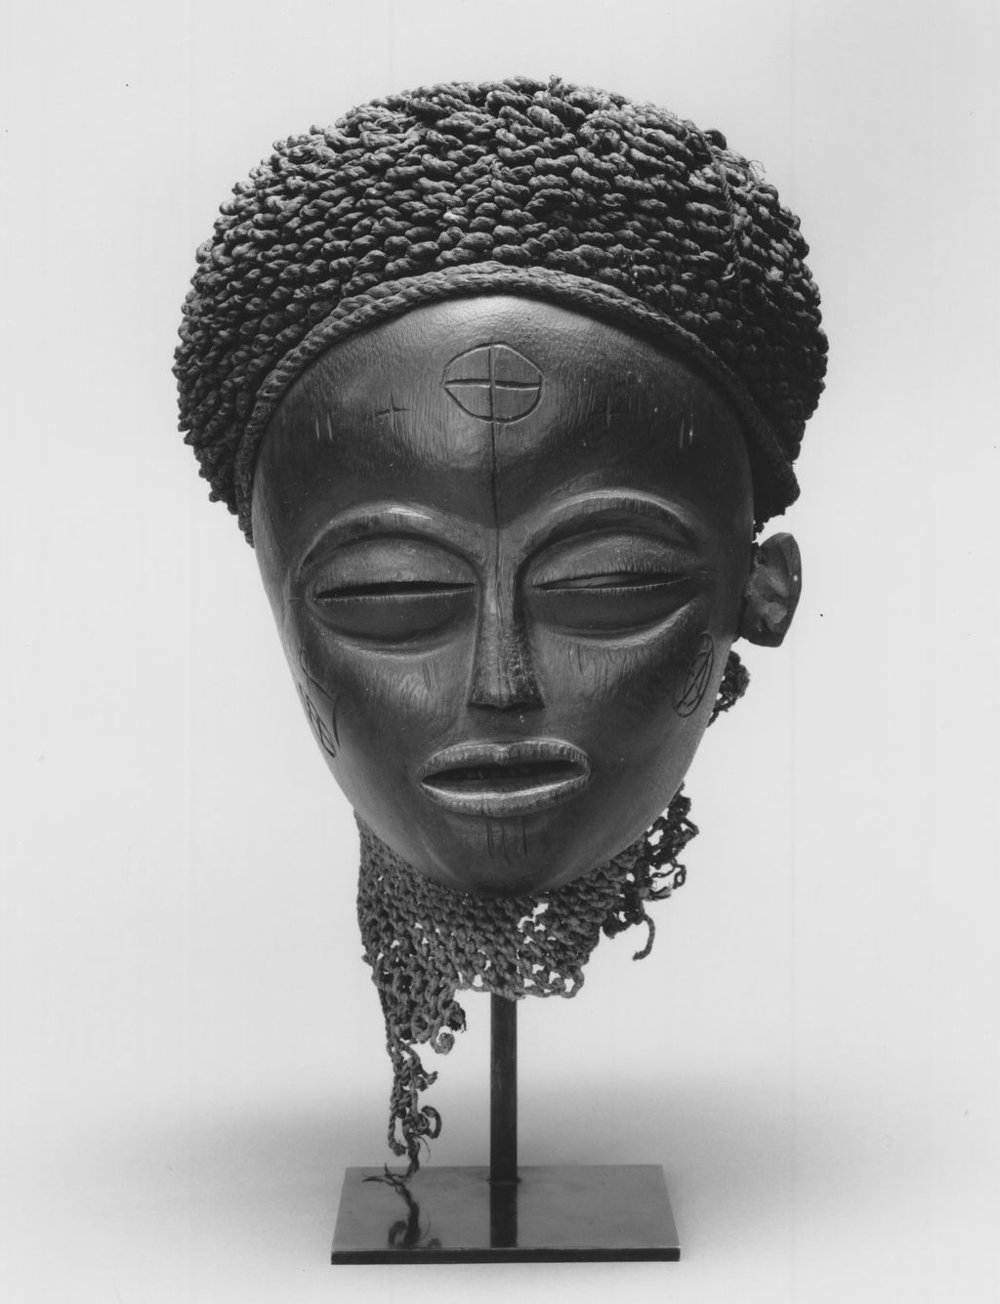 Brooklyn_Museum_1992.133.3_Mask_Mwana_Pwo-CC BY 3.0.jpg